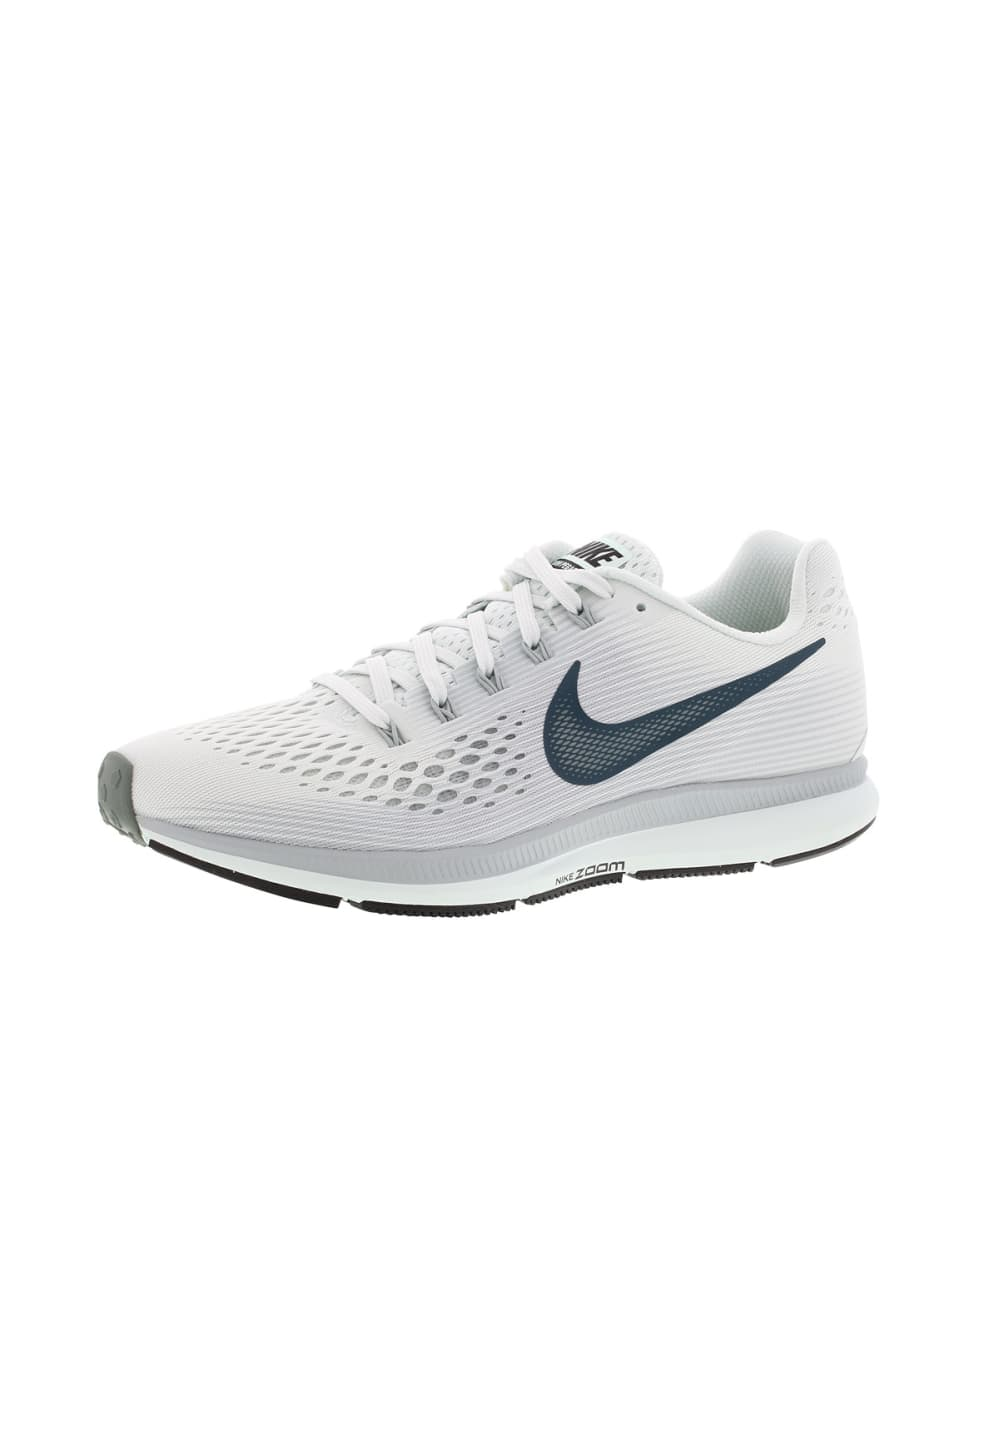 official photos 13862 d59b8 Next. Nike. Air Zoom Pegasus 34 ...